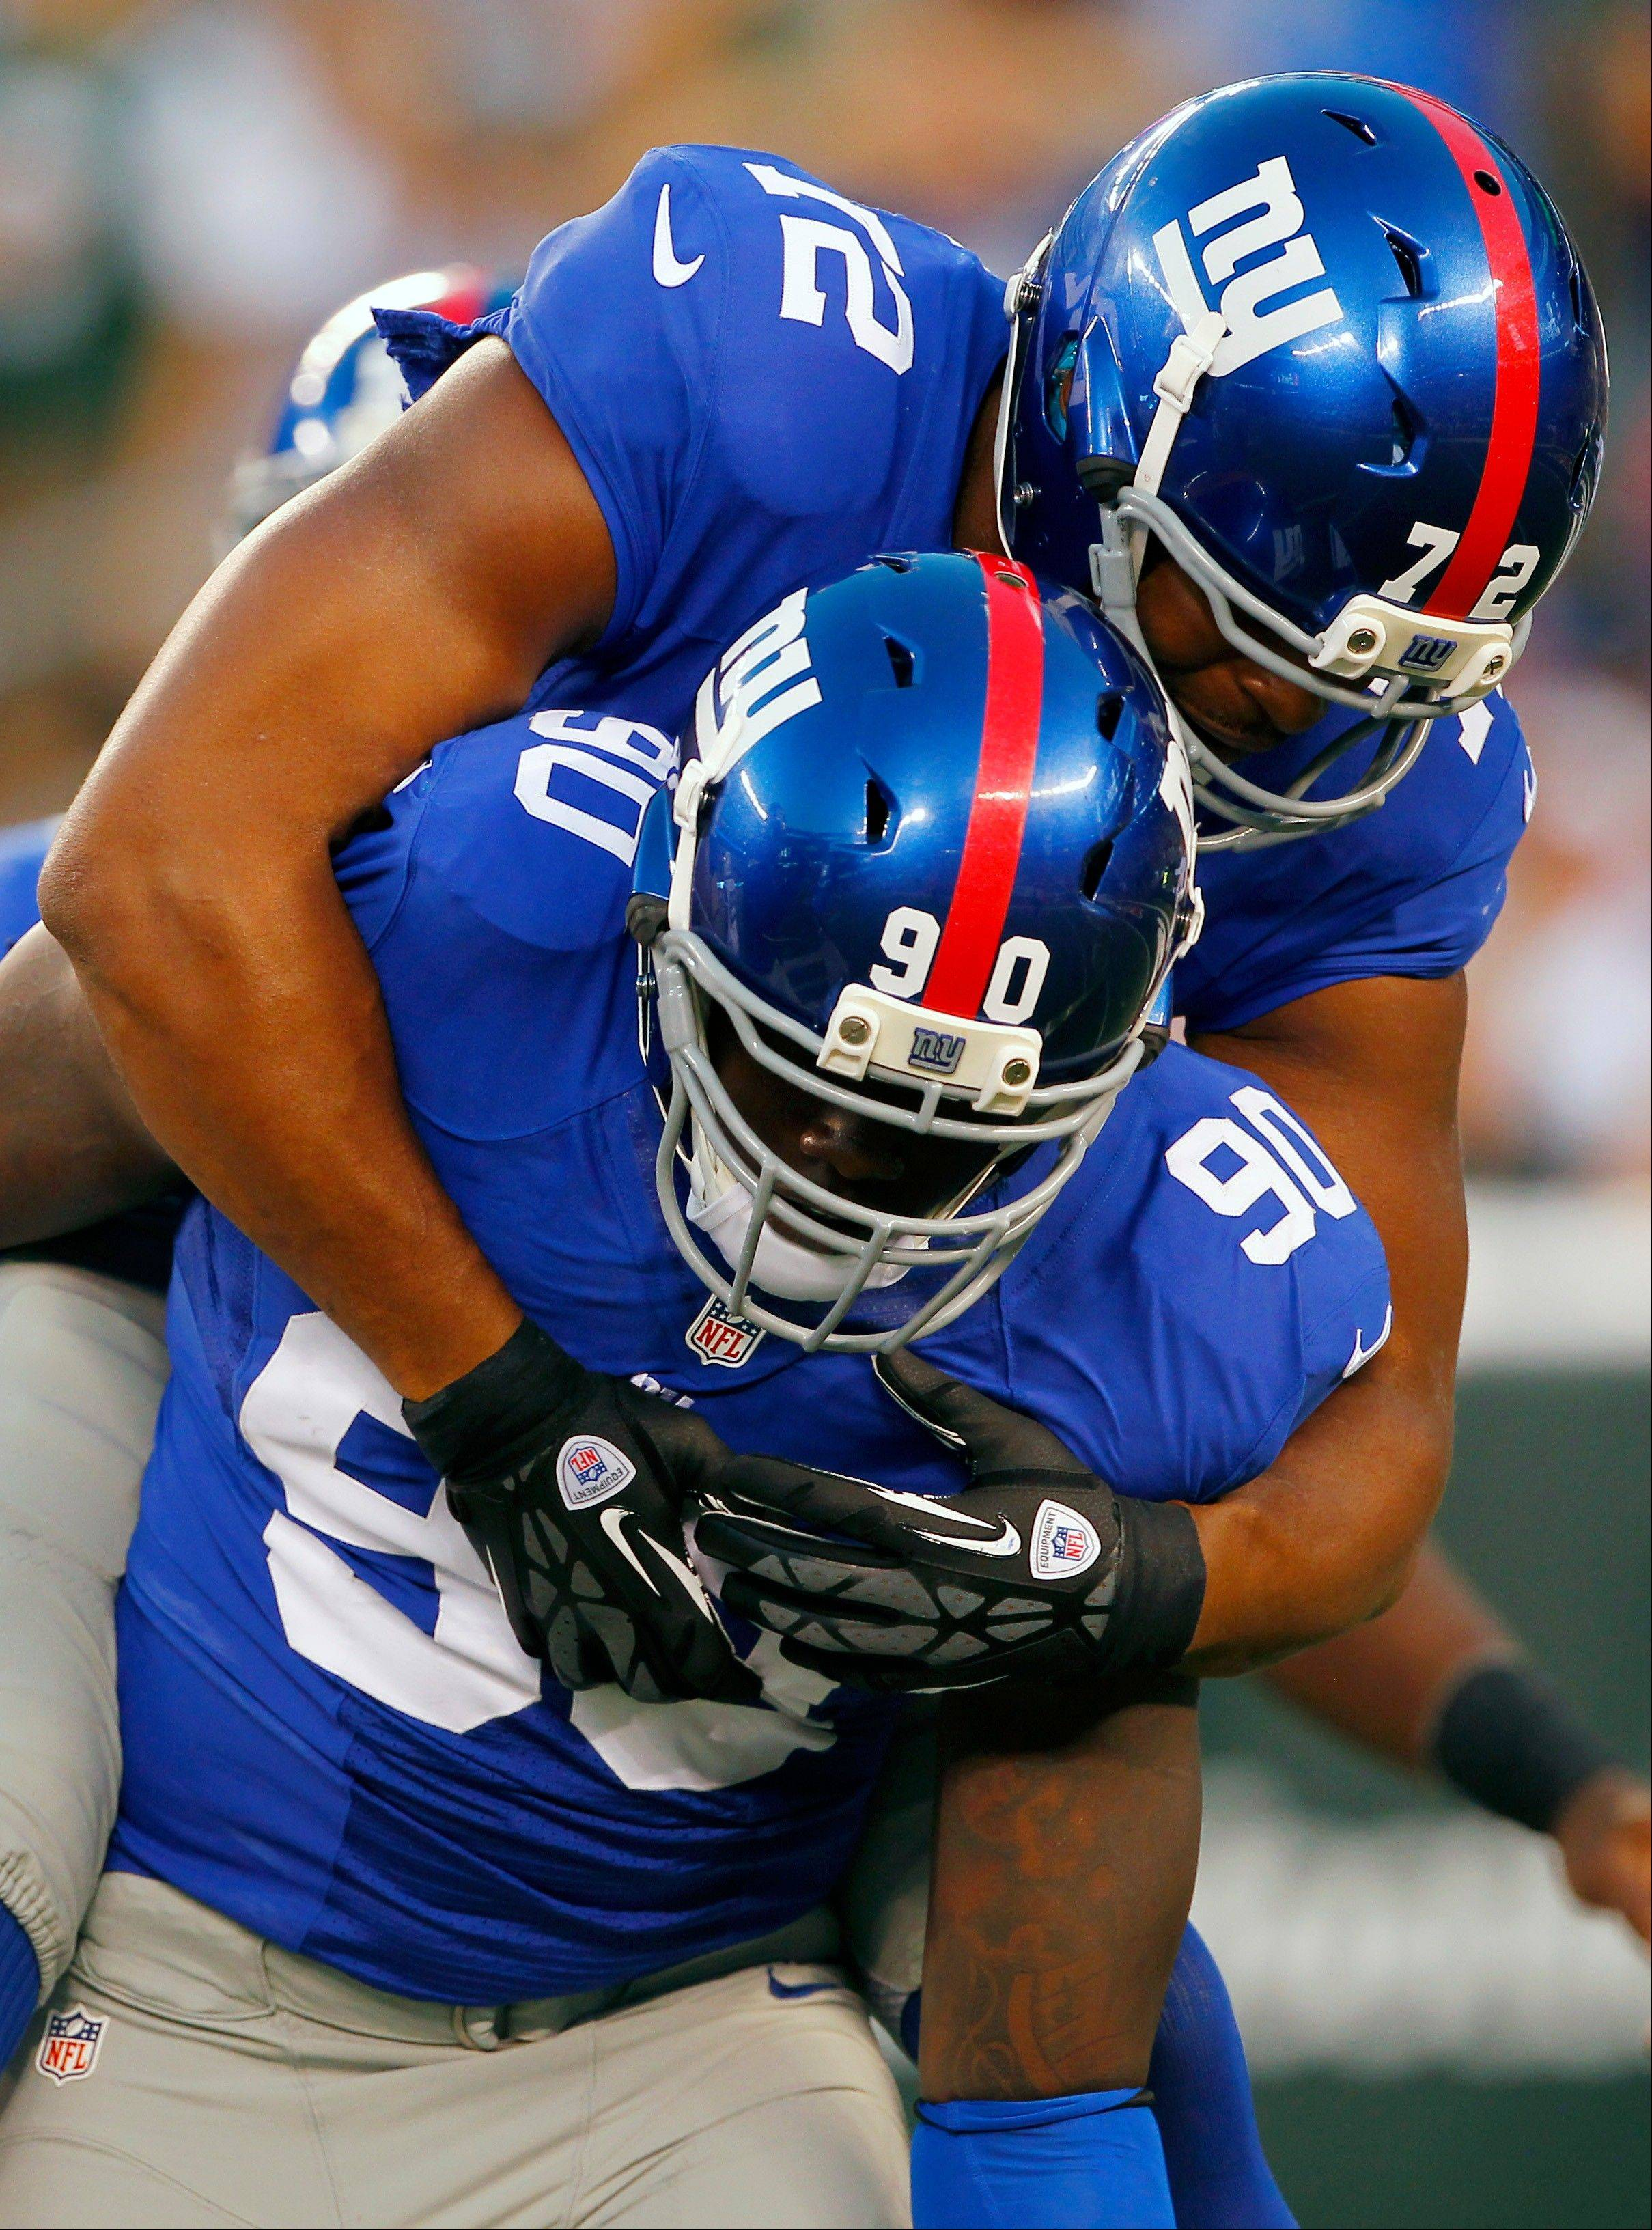 Giants defensive end Jason Pierre-Paul (90) reacts with teammate Osi Umenyiora (72) after sacking Jets quarterback Mark Sanchez in Saturday's preseason game.